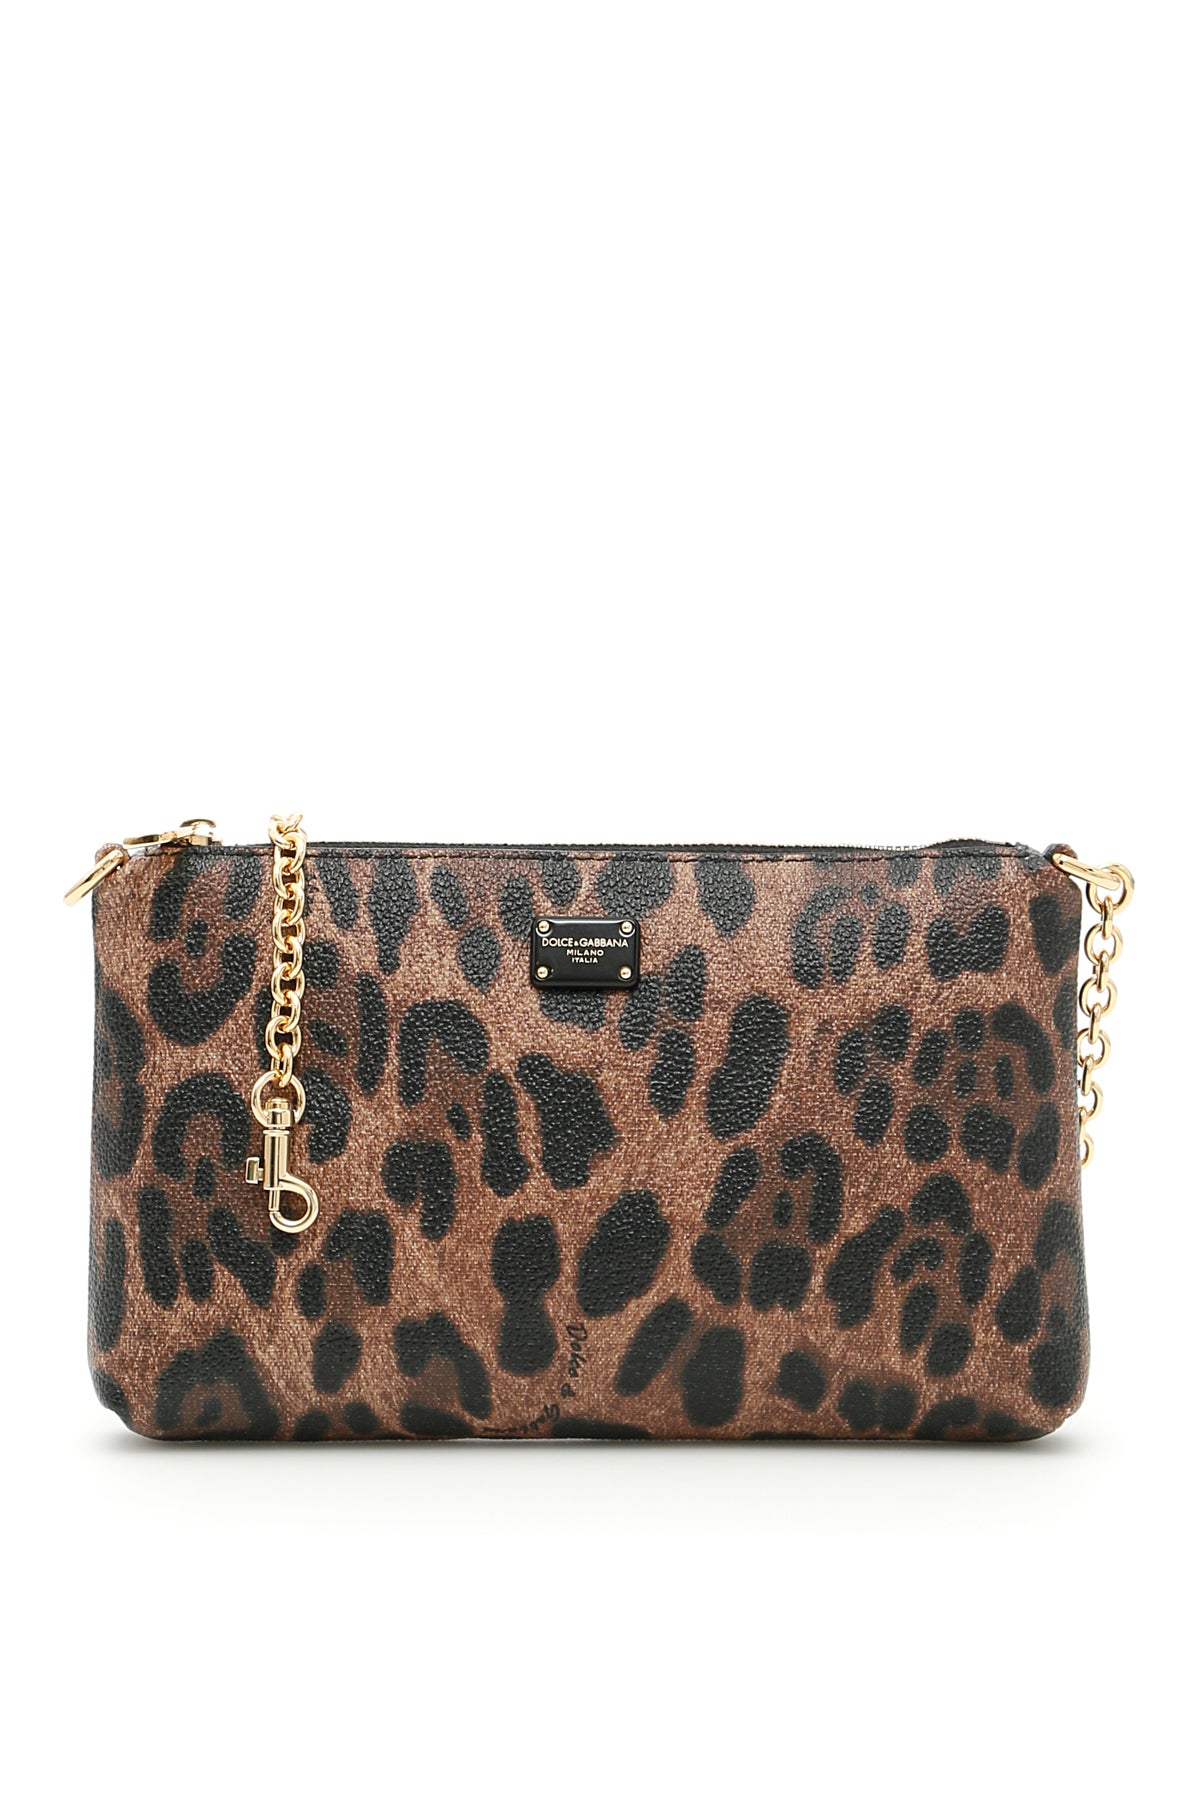 DOLCE & GABBANA LEO PRINT MINI CLUTCH BAG